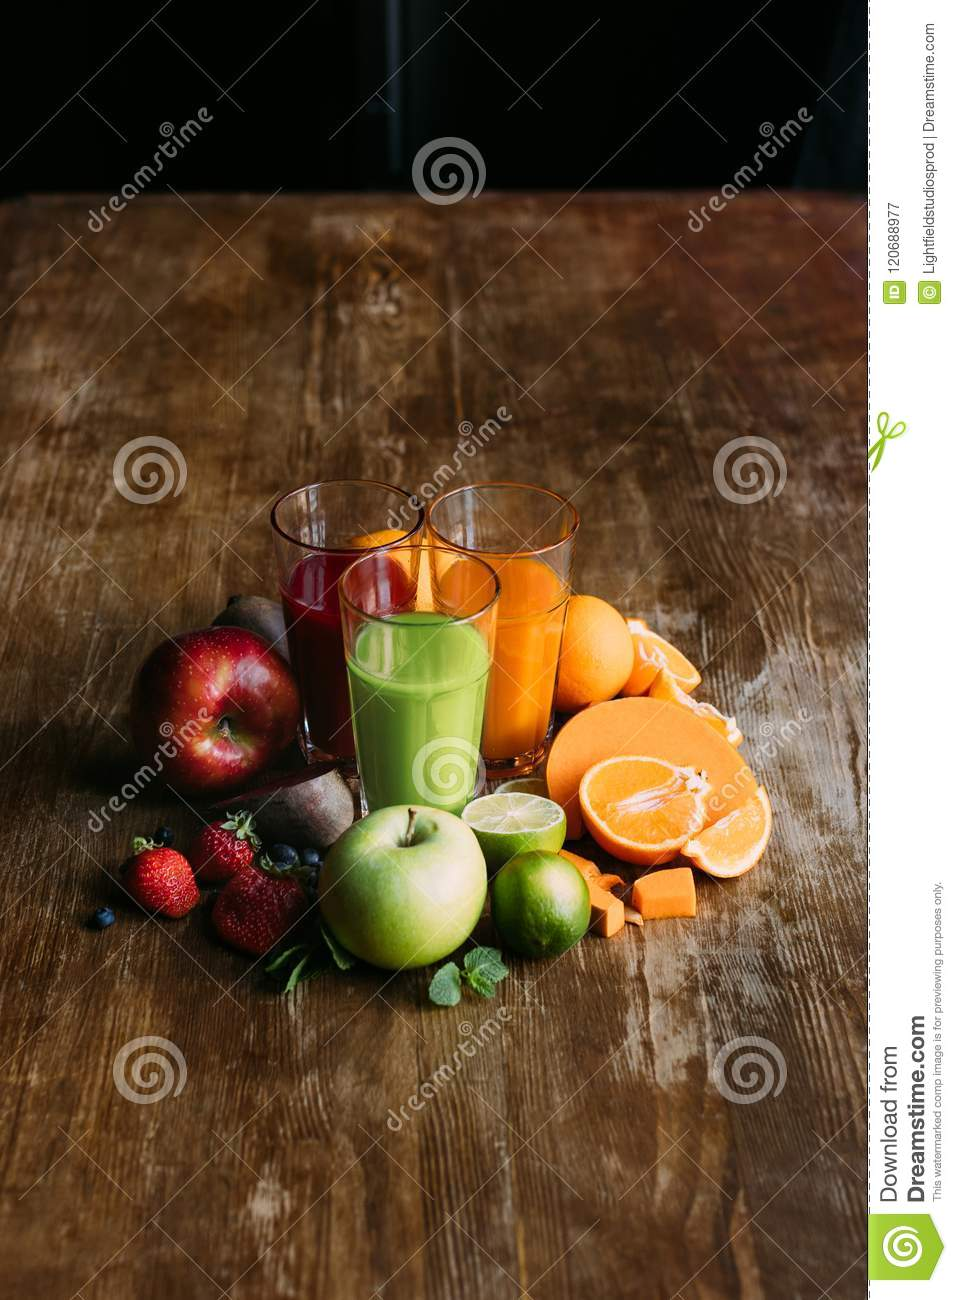 high angle view of various smoothies in glasses and fresh fruits with vegetables on wooden